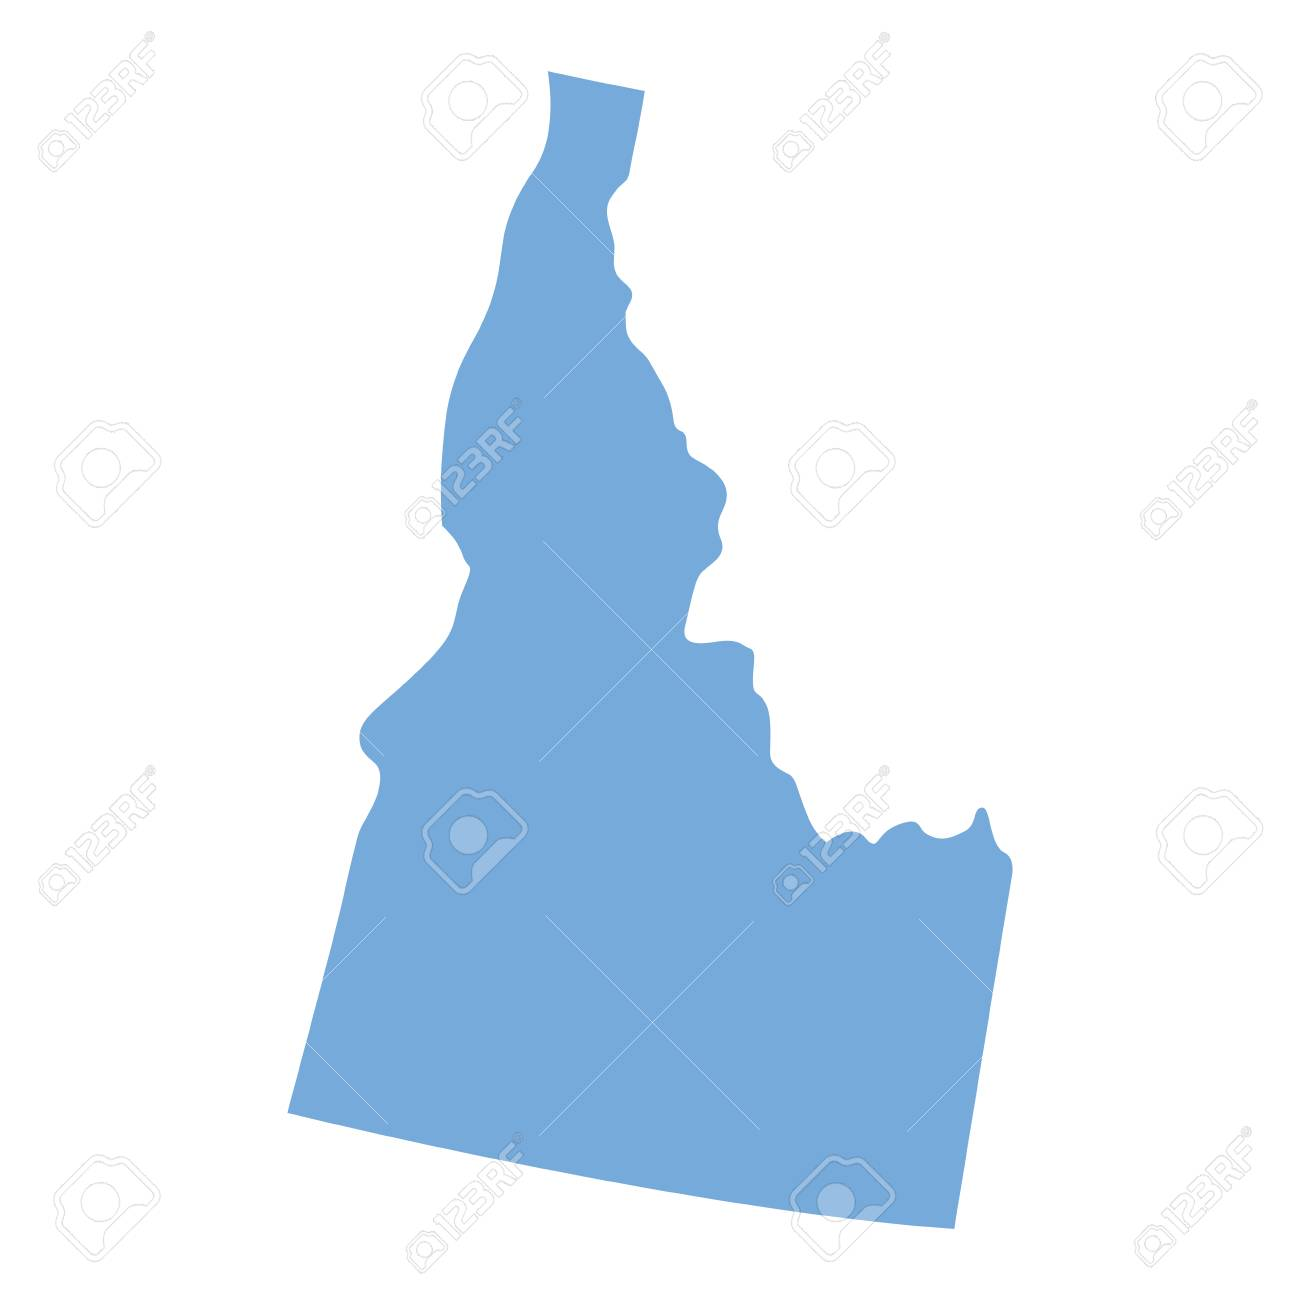 Map Of Idaho State On A White Background, Vector Illustration ...